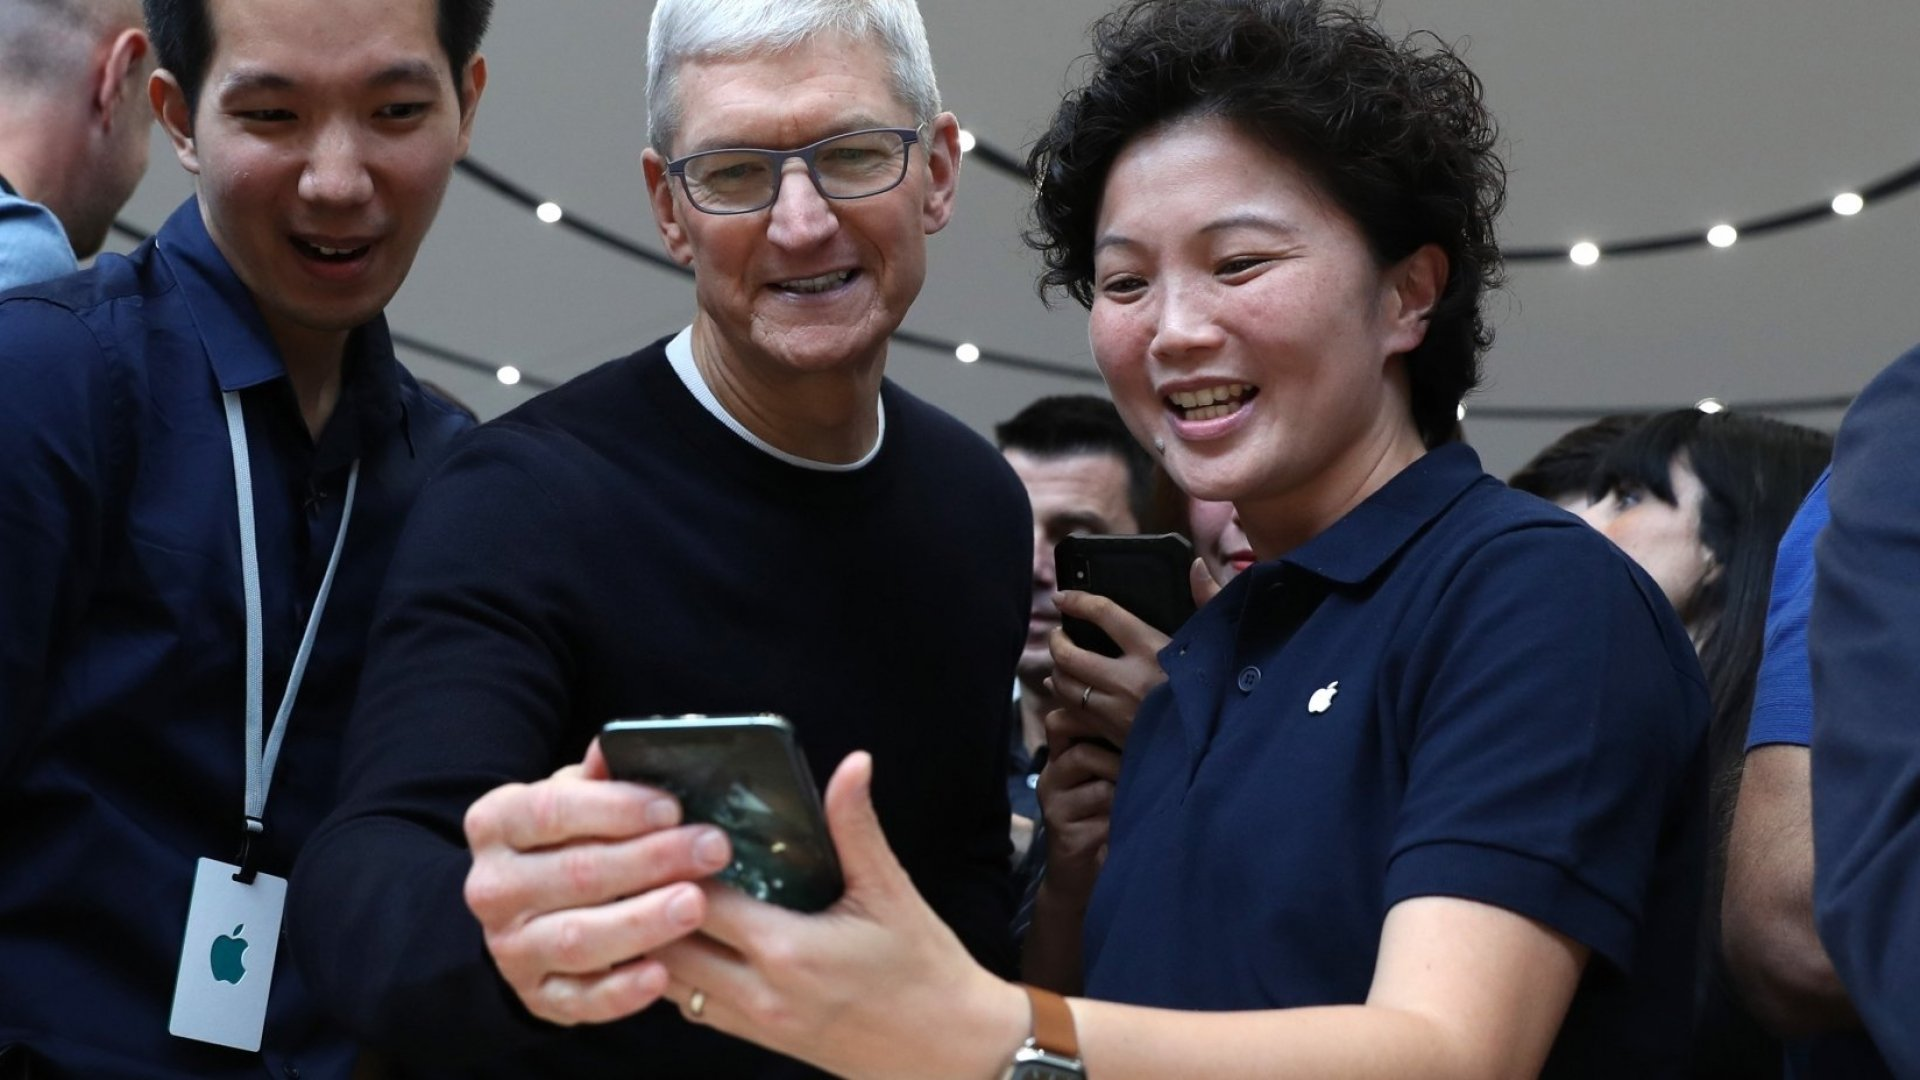 Tim Cook with the new iPhone 11 Pro Max, September 10, 2019, at Apple headquarters in Cupertino, California.